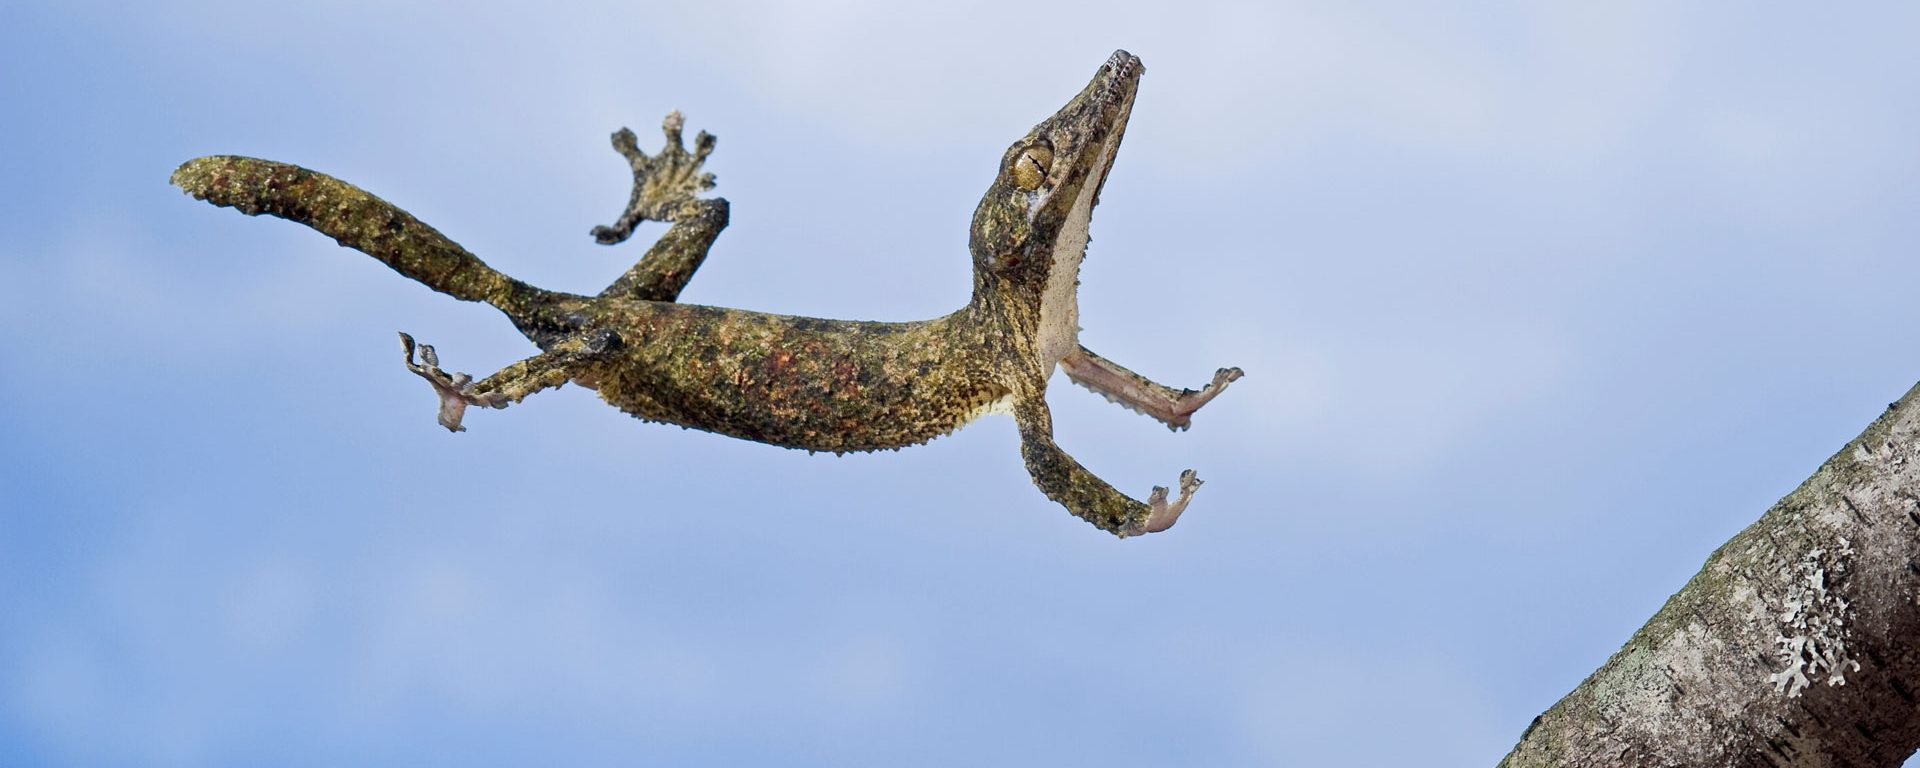 Henkel's leaf-tailed gecko in mid leap, Madagascar